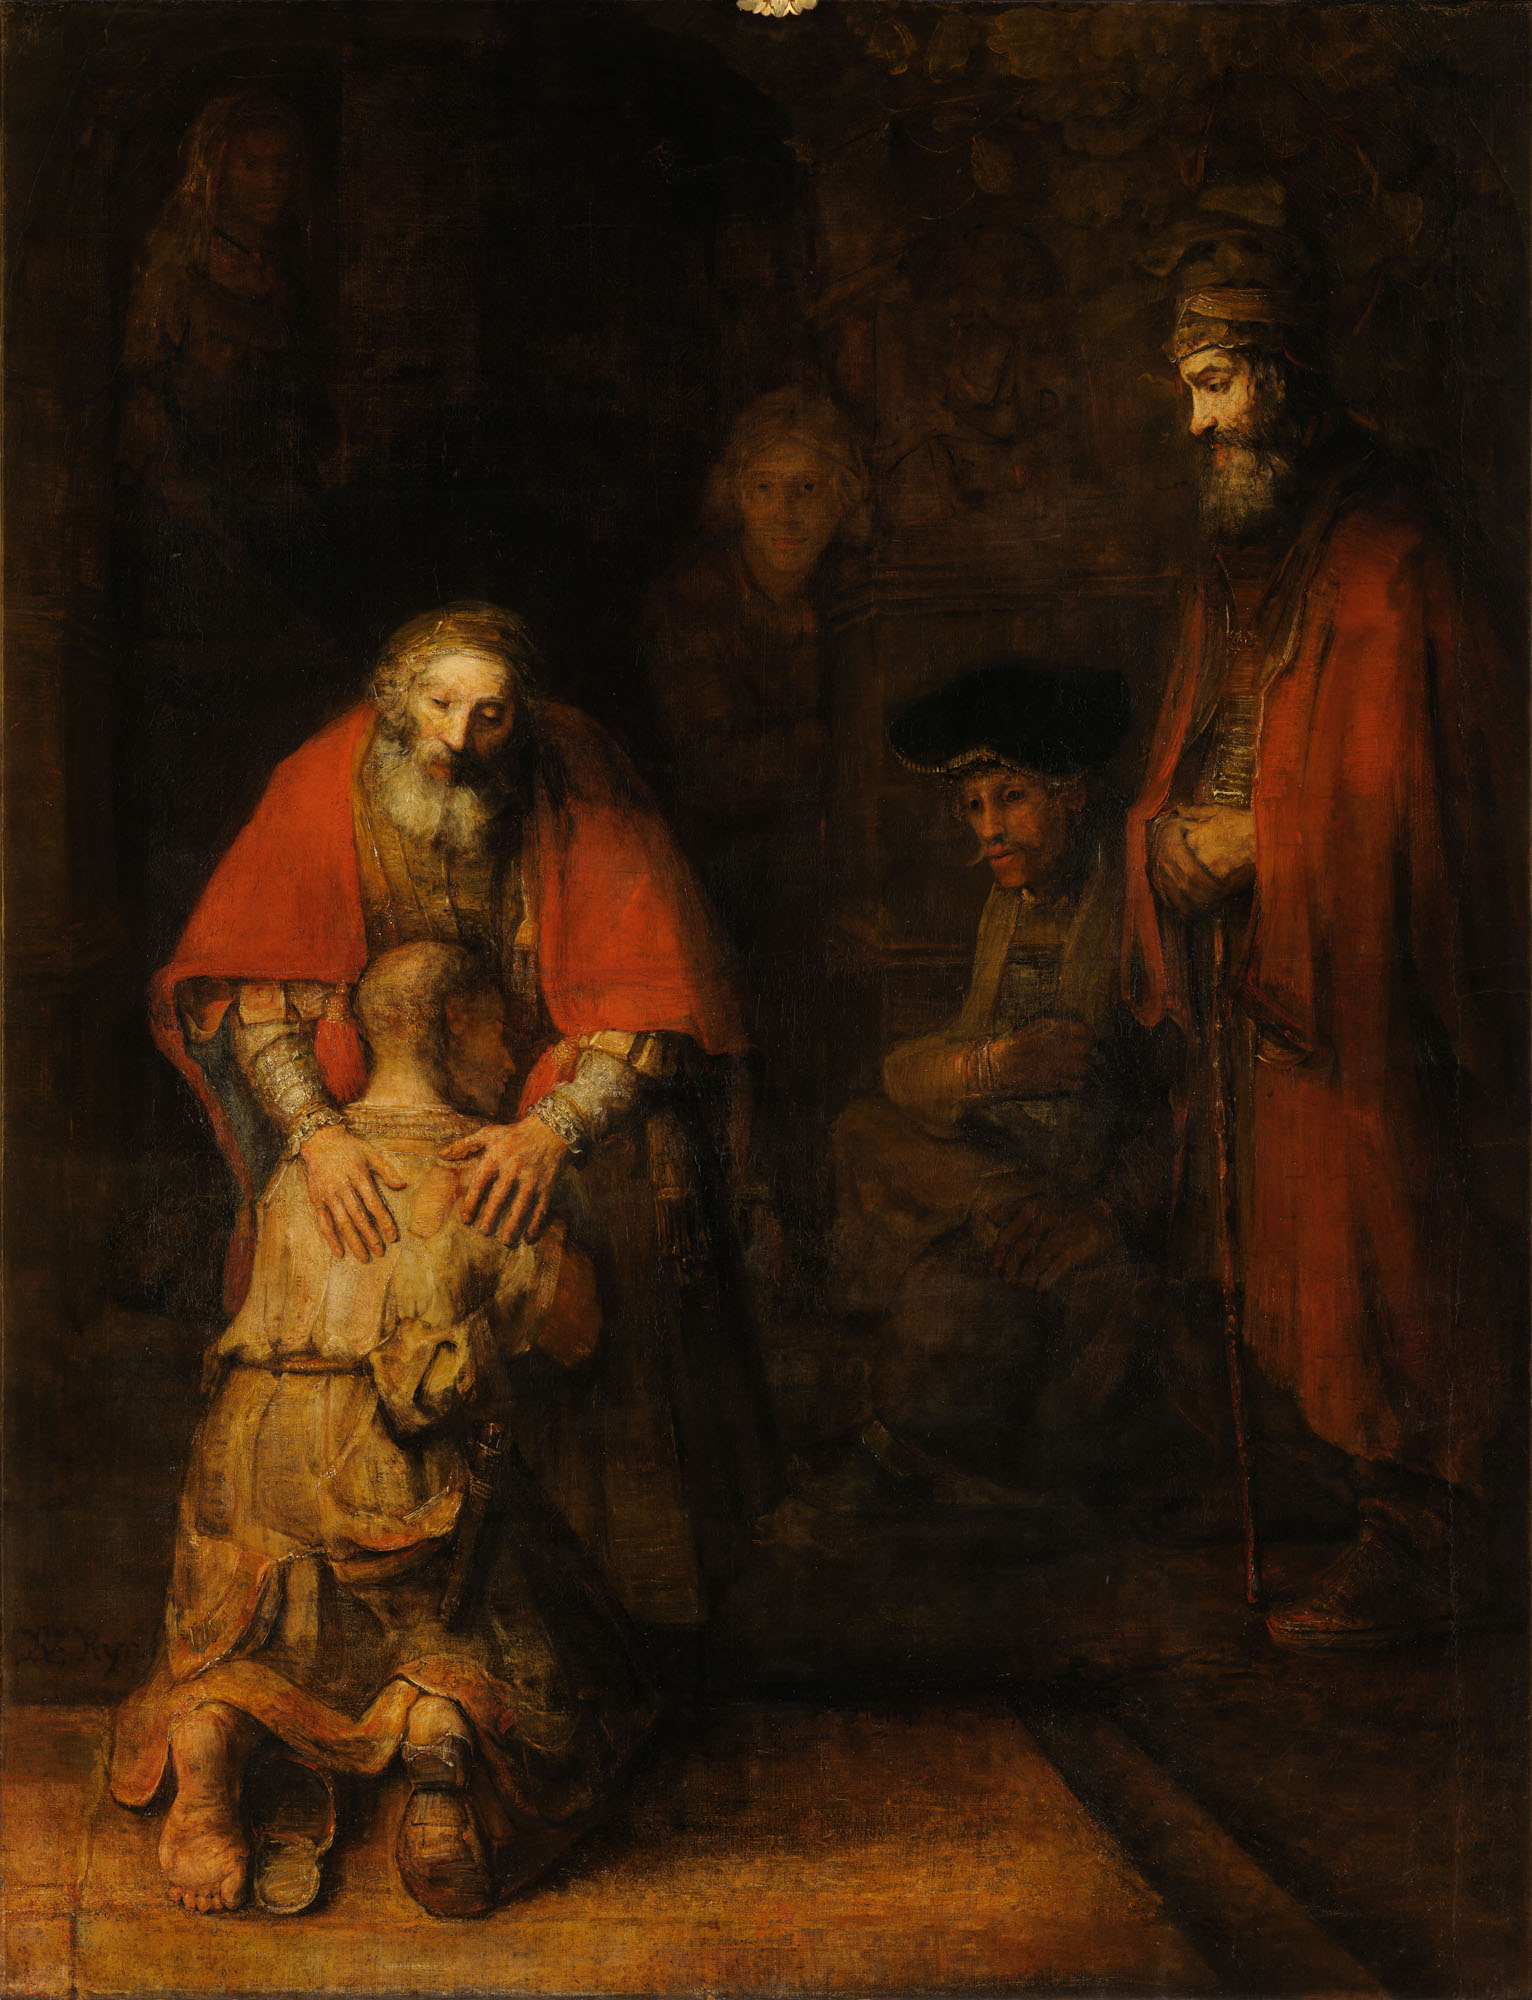 Rembrandt Harmensz van Rijn - Return of the Prodigal Son 1532